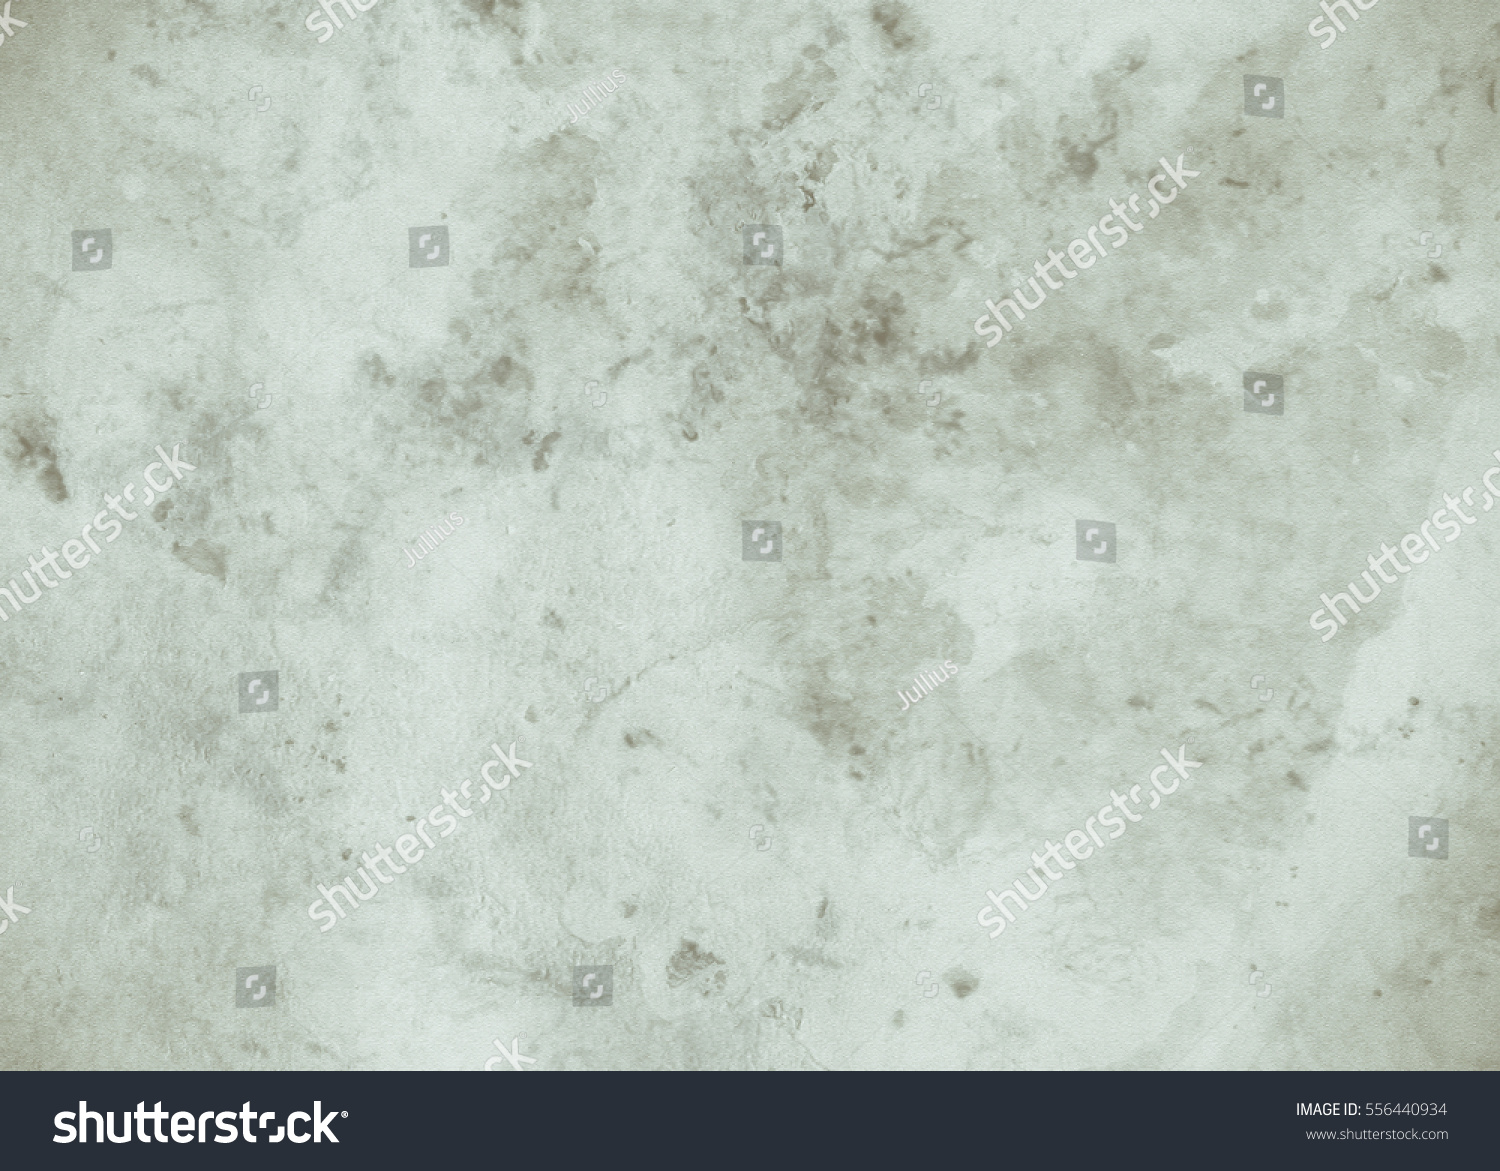 Abstract grunge wall surface old paper stock photo for Wall surface texture